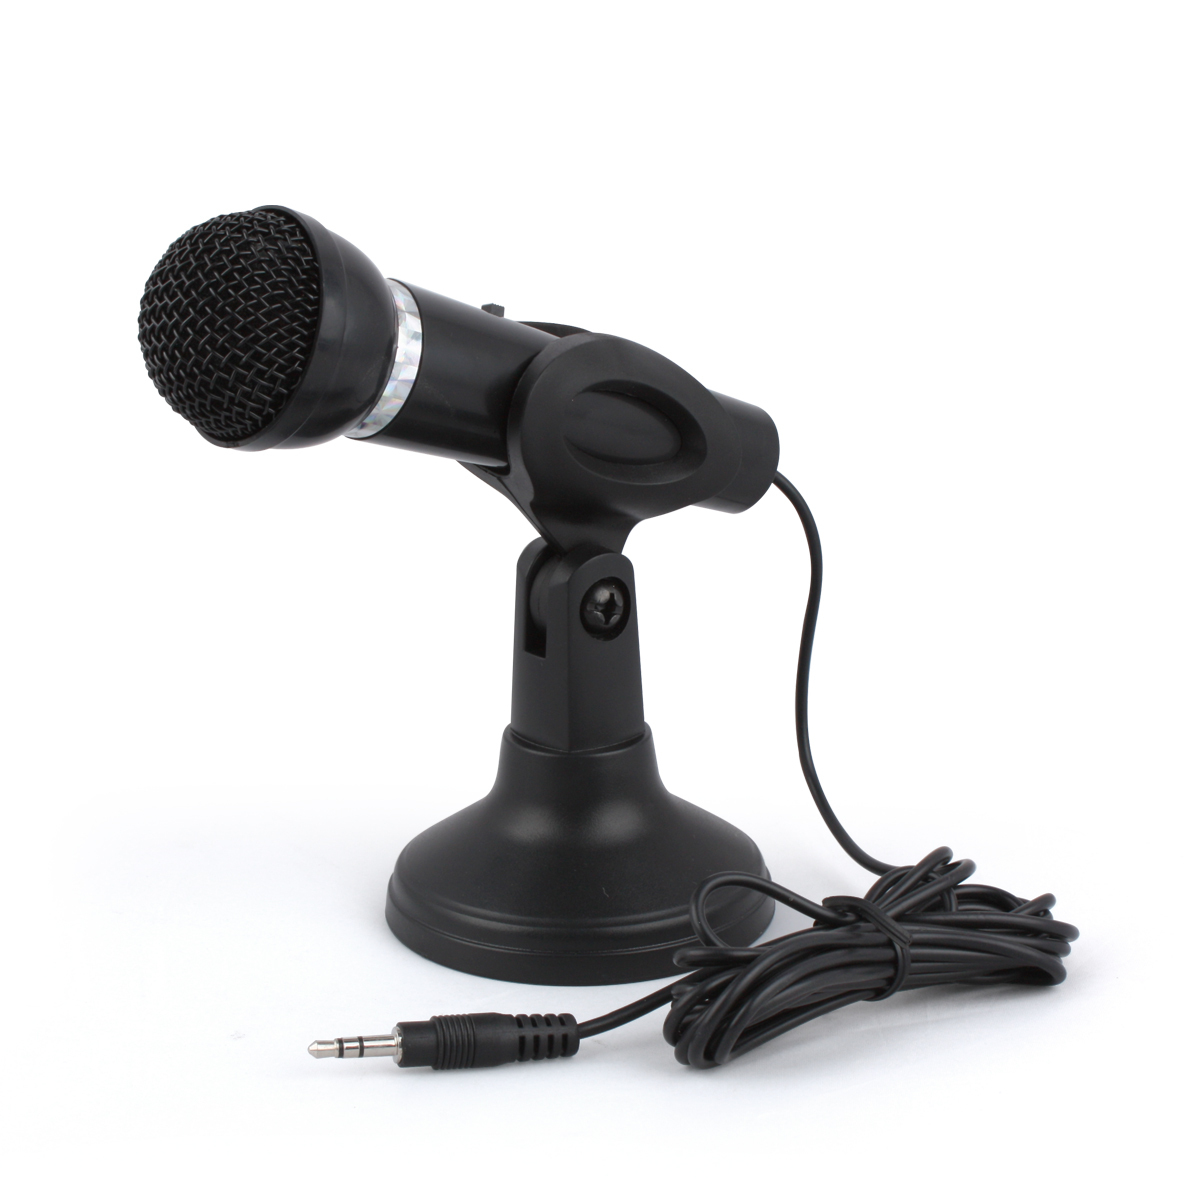 Book m2 mic computer microphone with switch